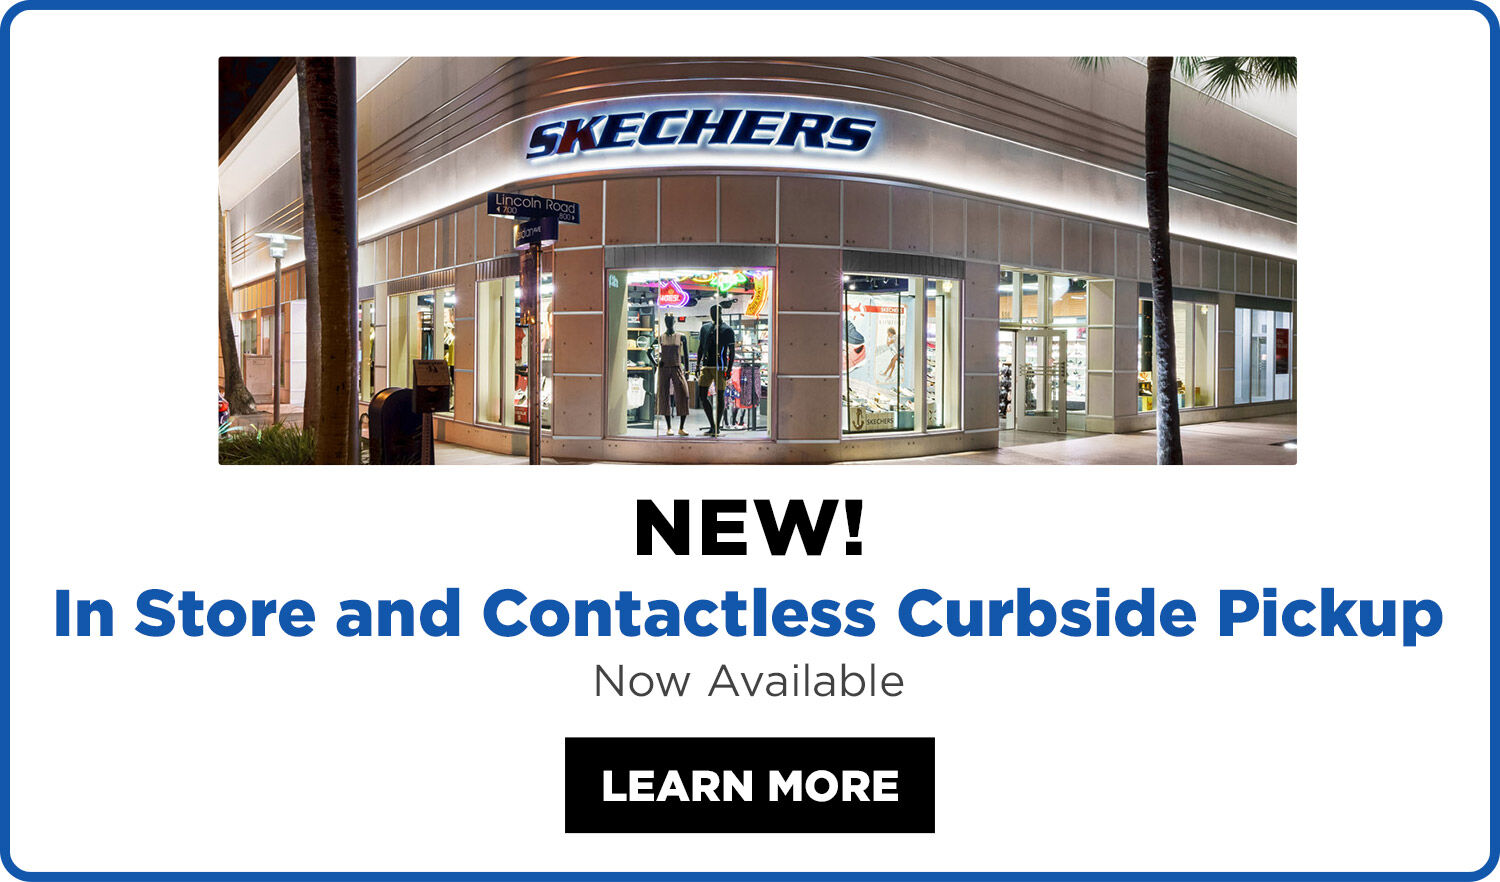 New in store and contactless curbside pick up - now available in select stores - learn more